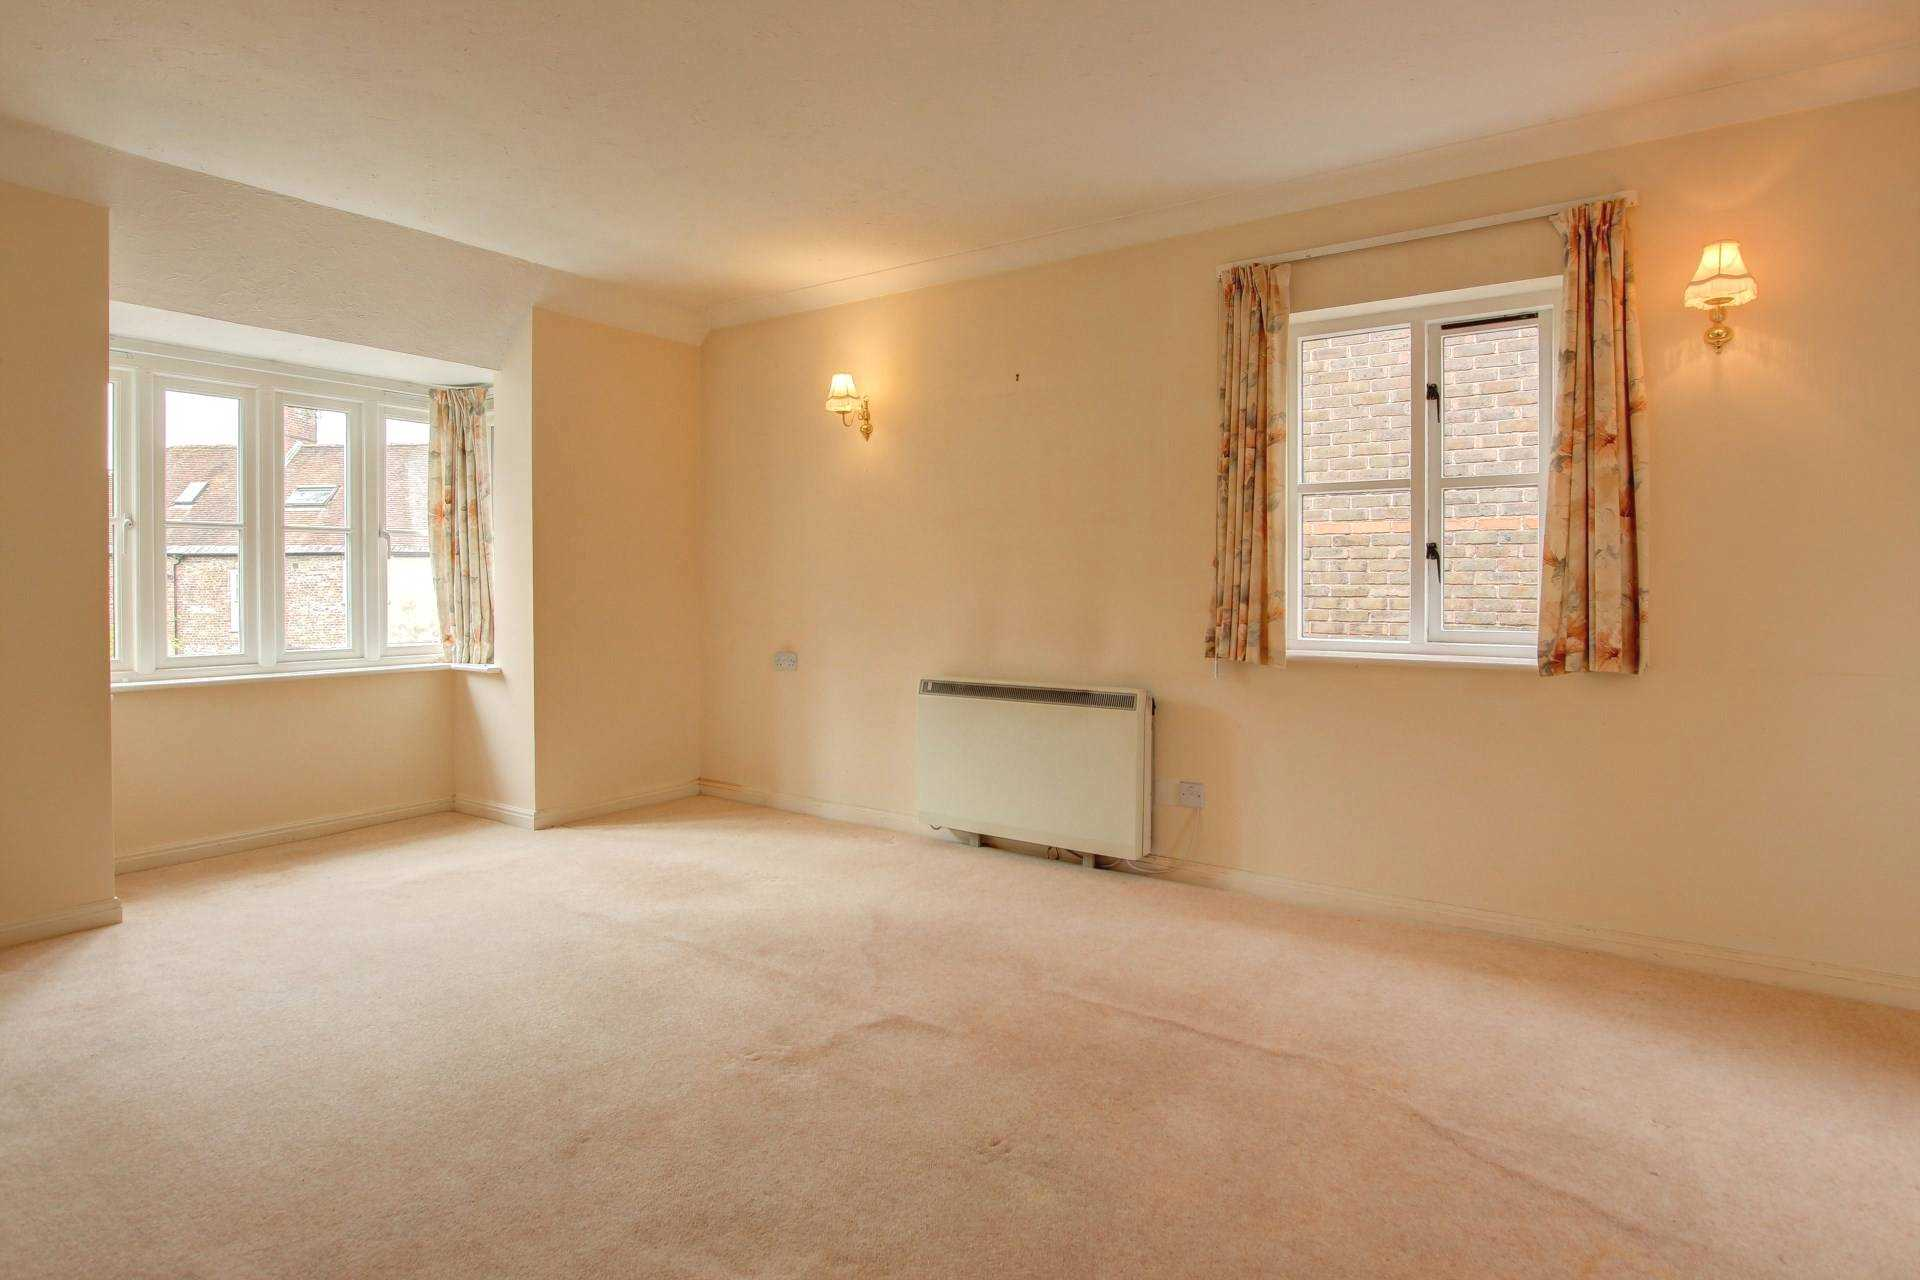 2 bed retirement property for sale in Whitecliffe Court, Blandford Forum, Blandford Forum  - Property Image 3